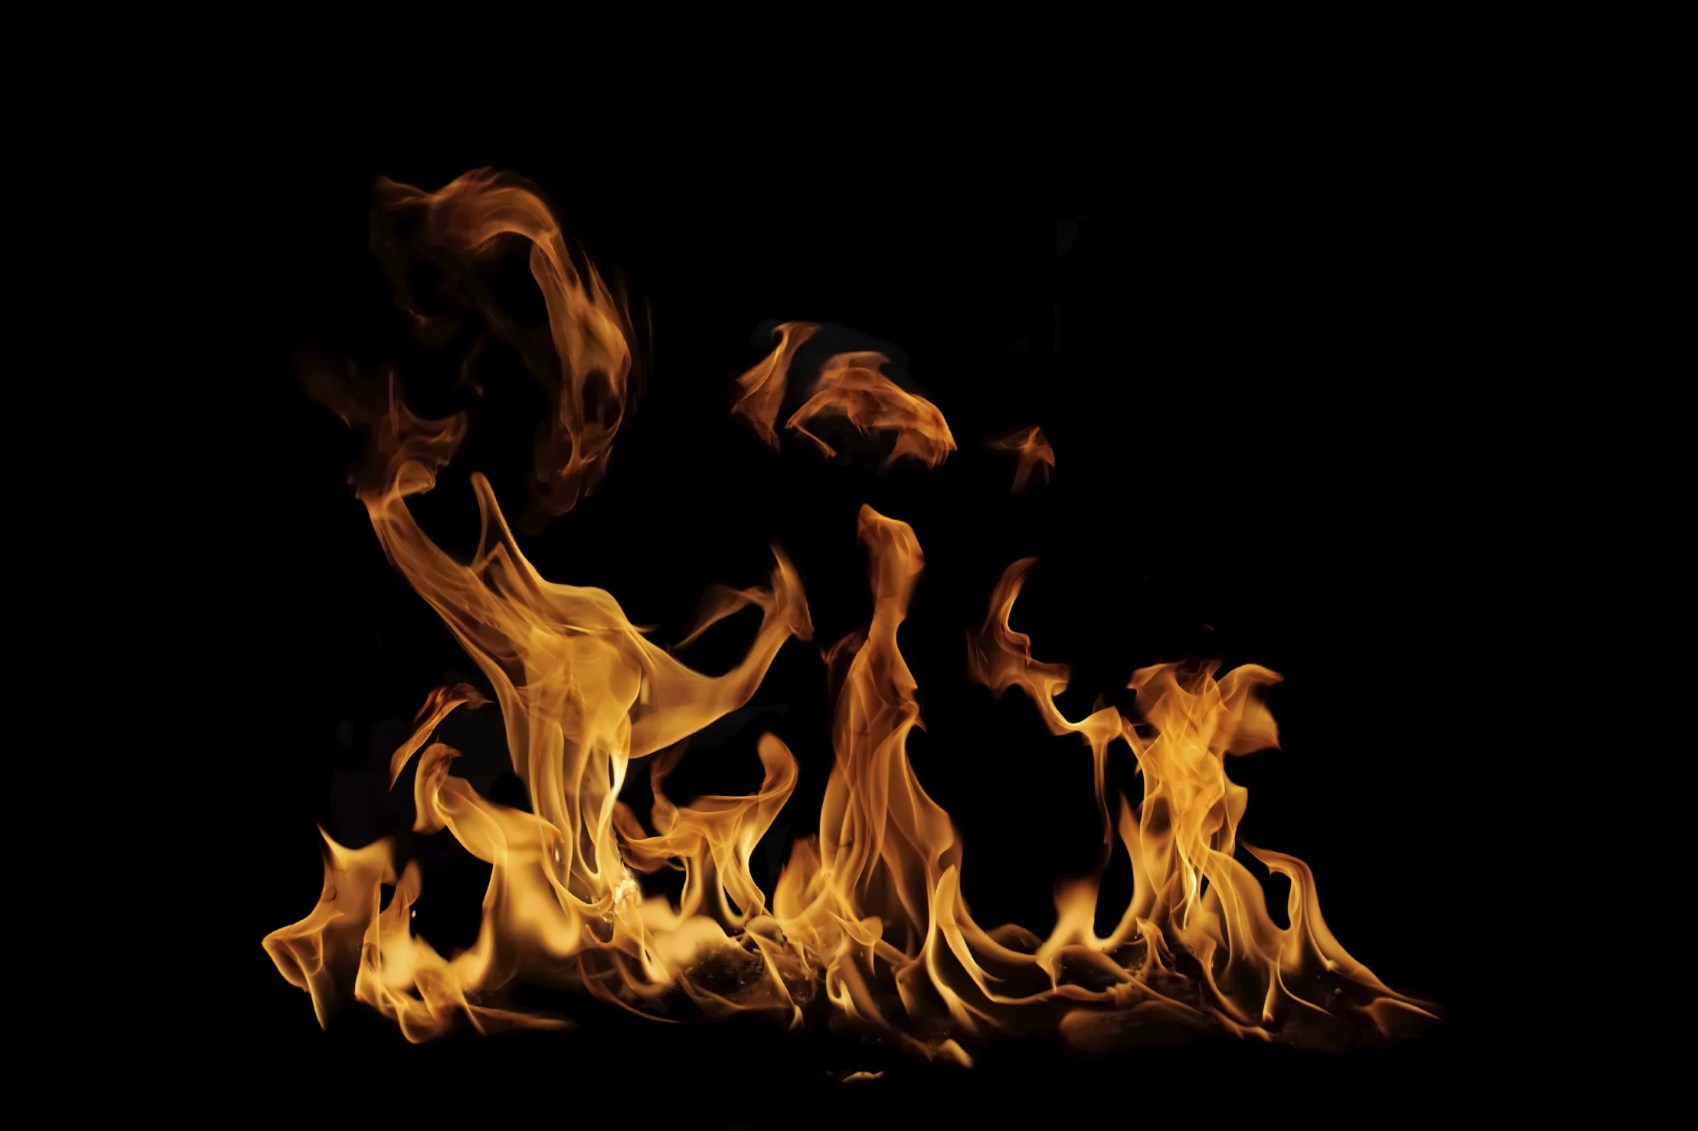 Isolated Flames - iStock 000007999775 Medium.jpg